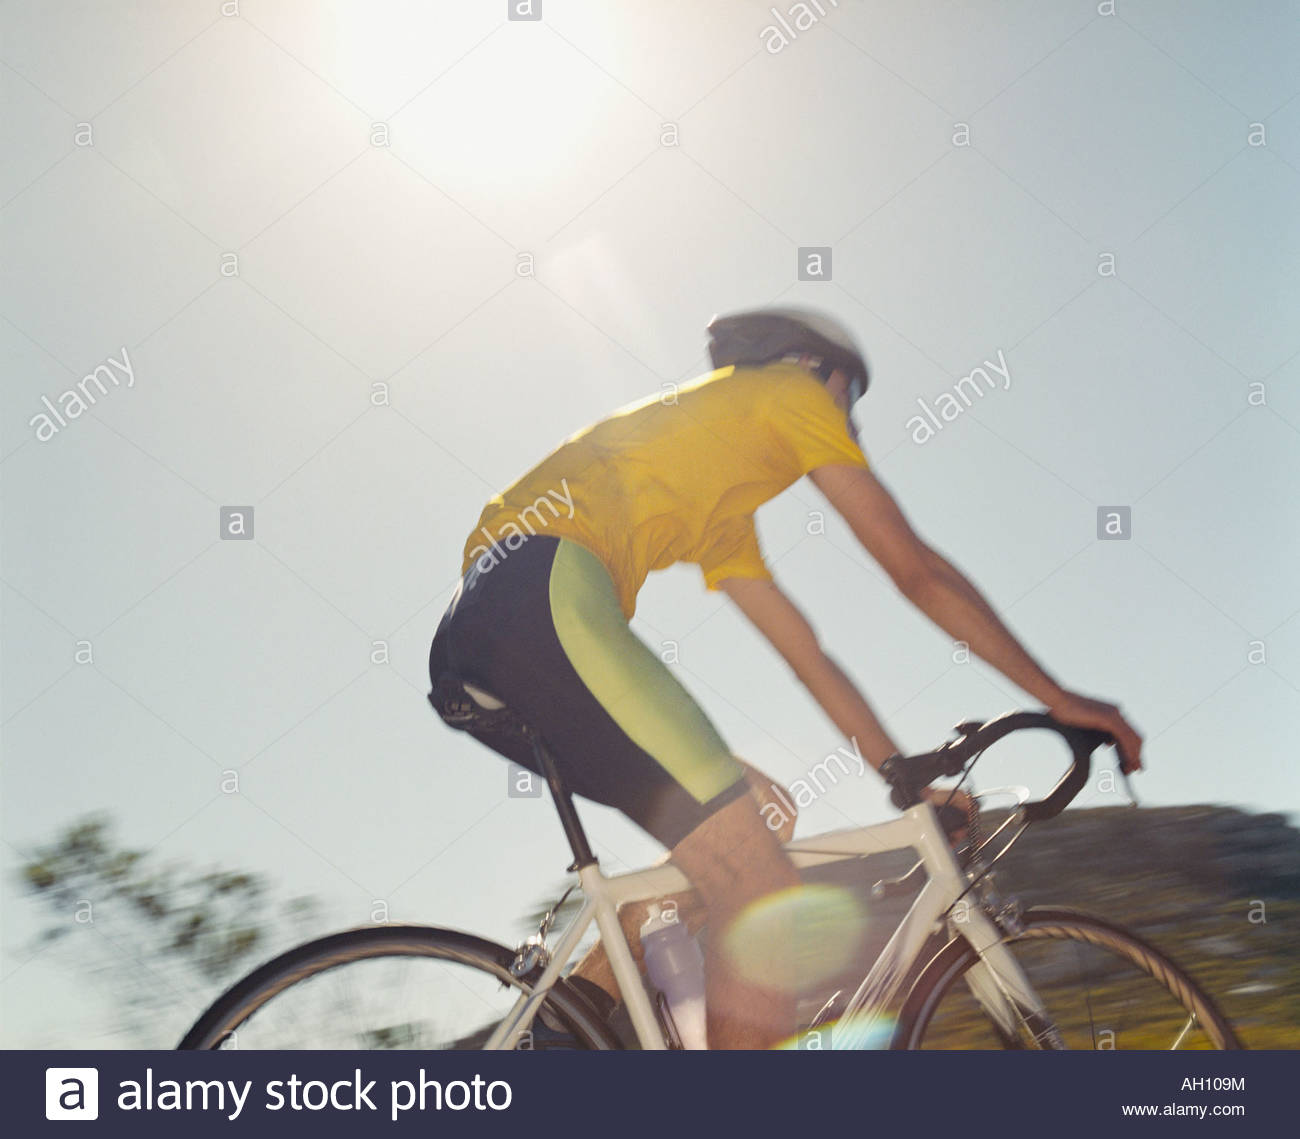 A man riding his bike on a sunny day - Stock Image